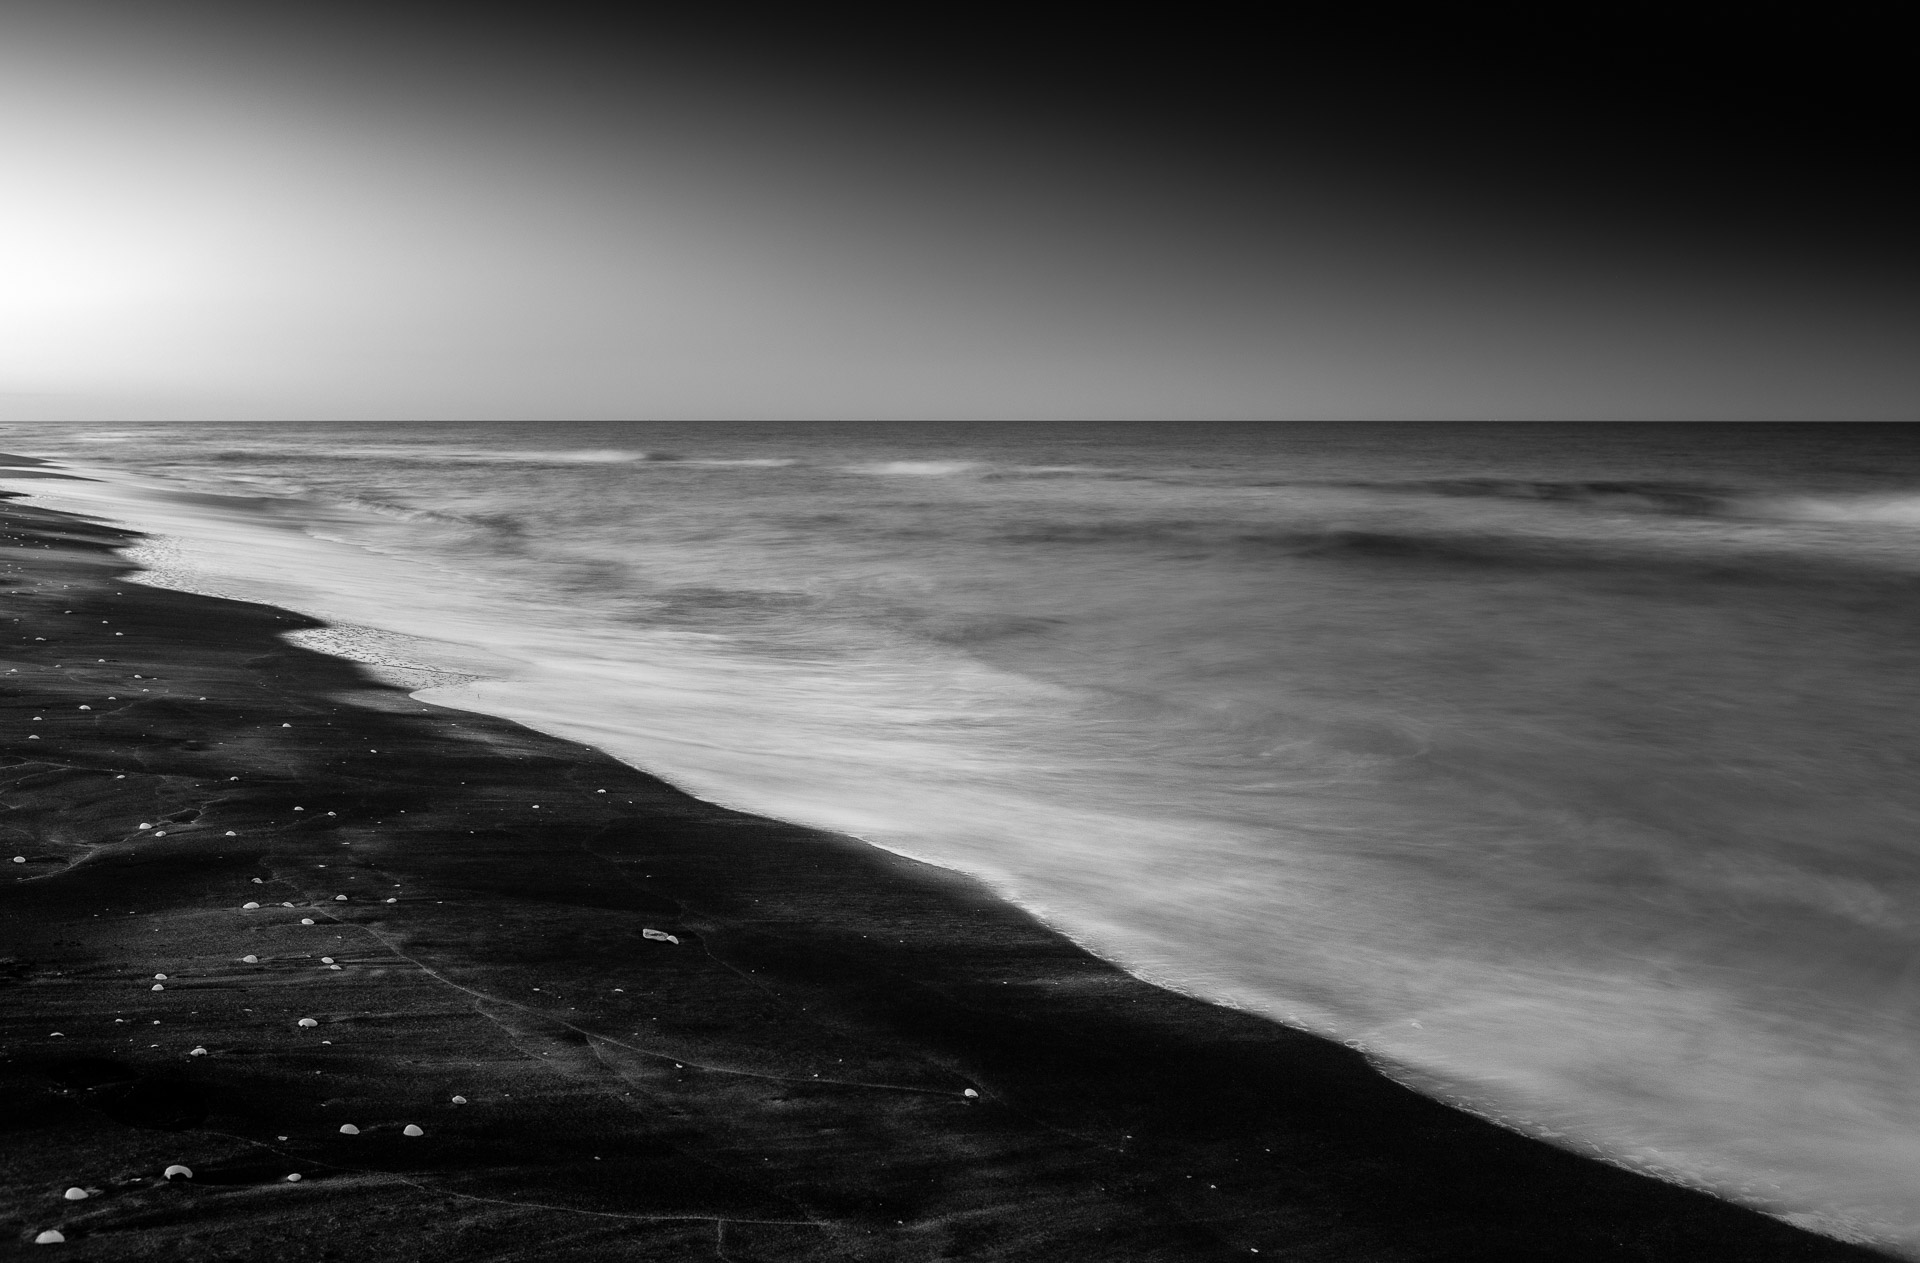 Spiaggia Cesine, black and white long exposure photography